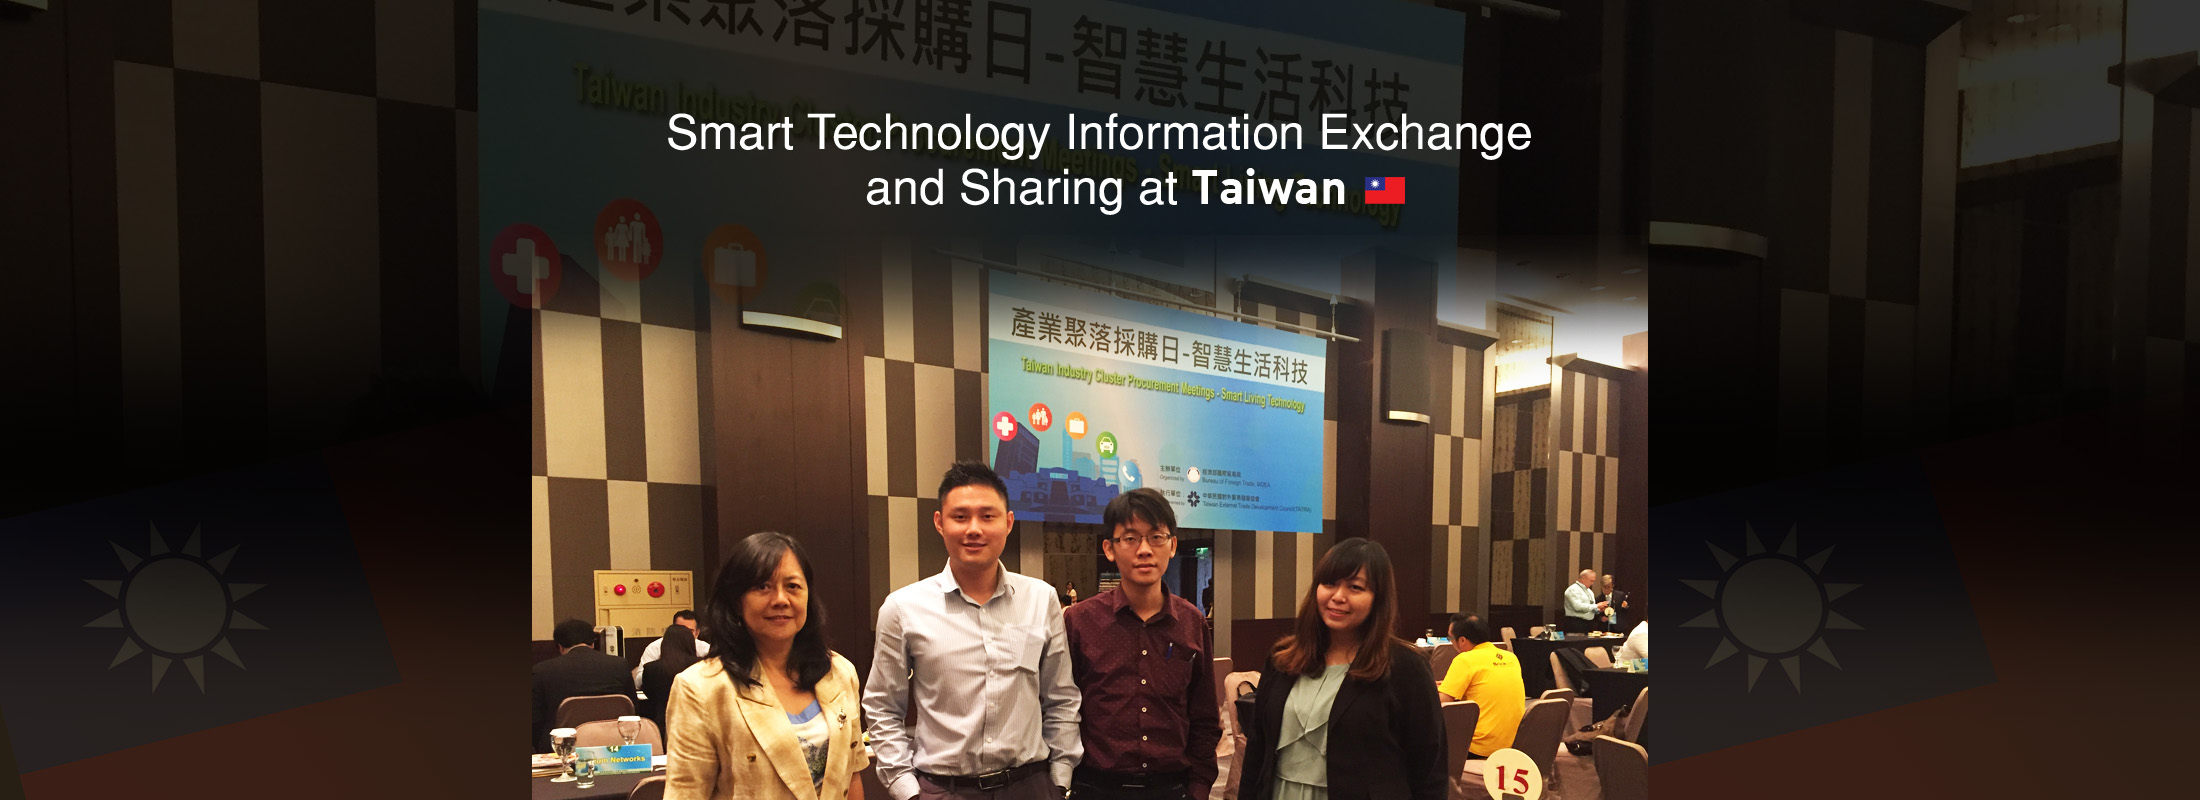 Smart Technology Information Exchange and Sharing at Taiwan